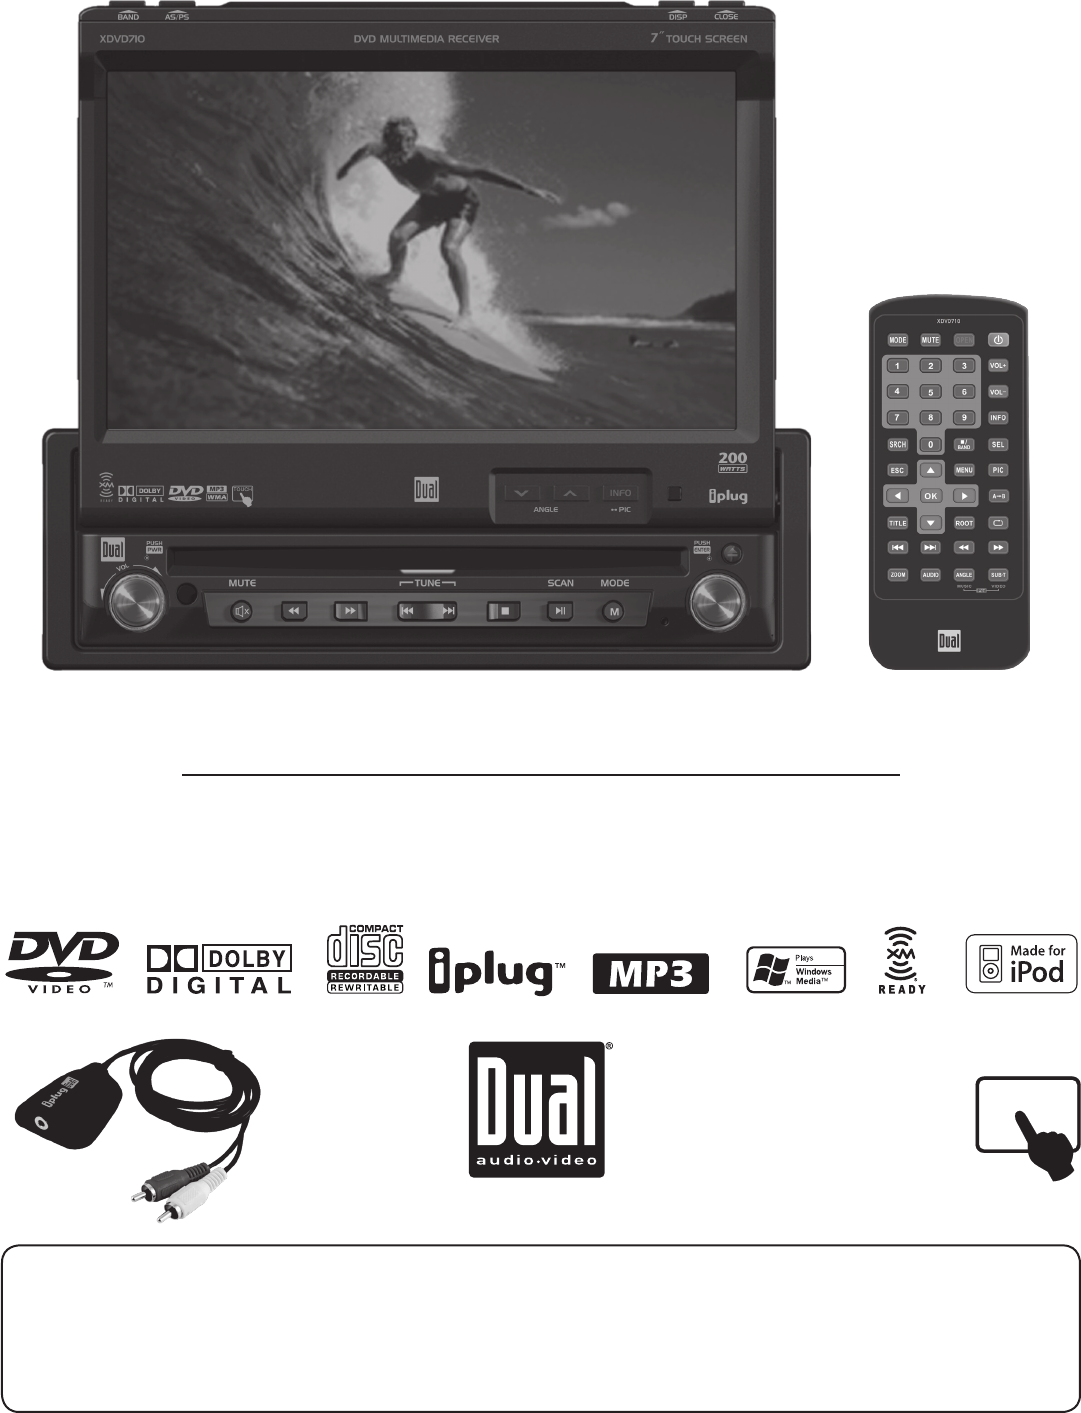 0b2b0248 6f0c 1464 fdf9 bdc9b74ba898 bg1 dual car video system xdvd710 user guide manualsonline com dual model xdvd710 wiring diagram at n-0.co